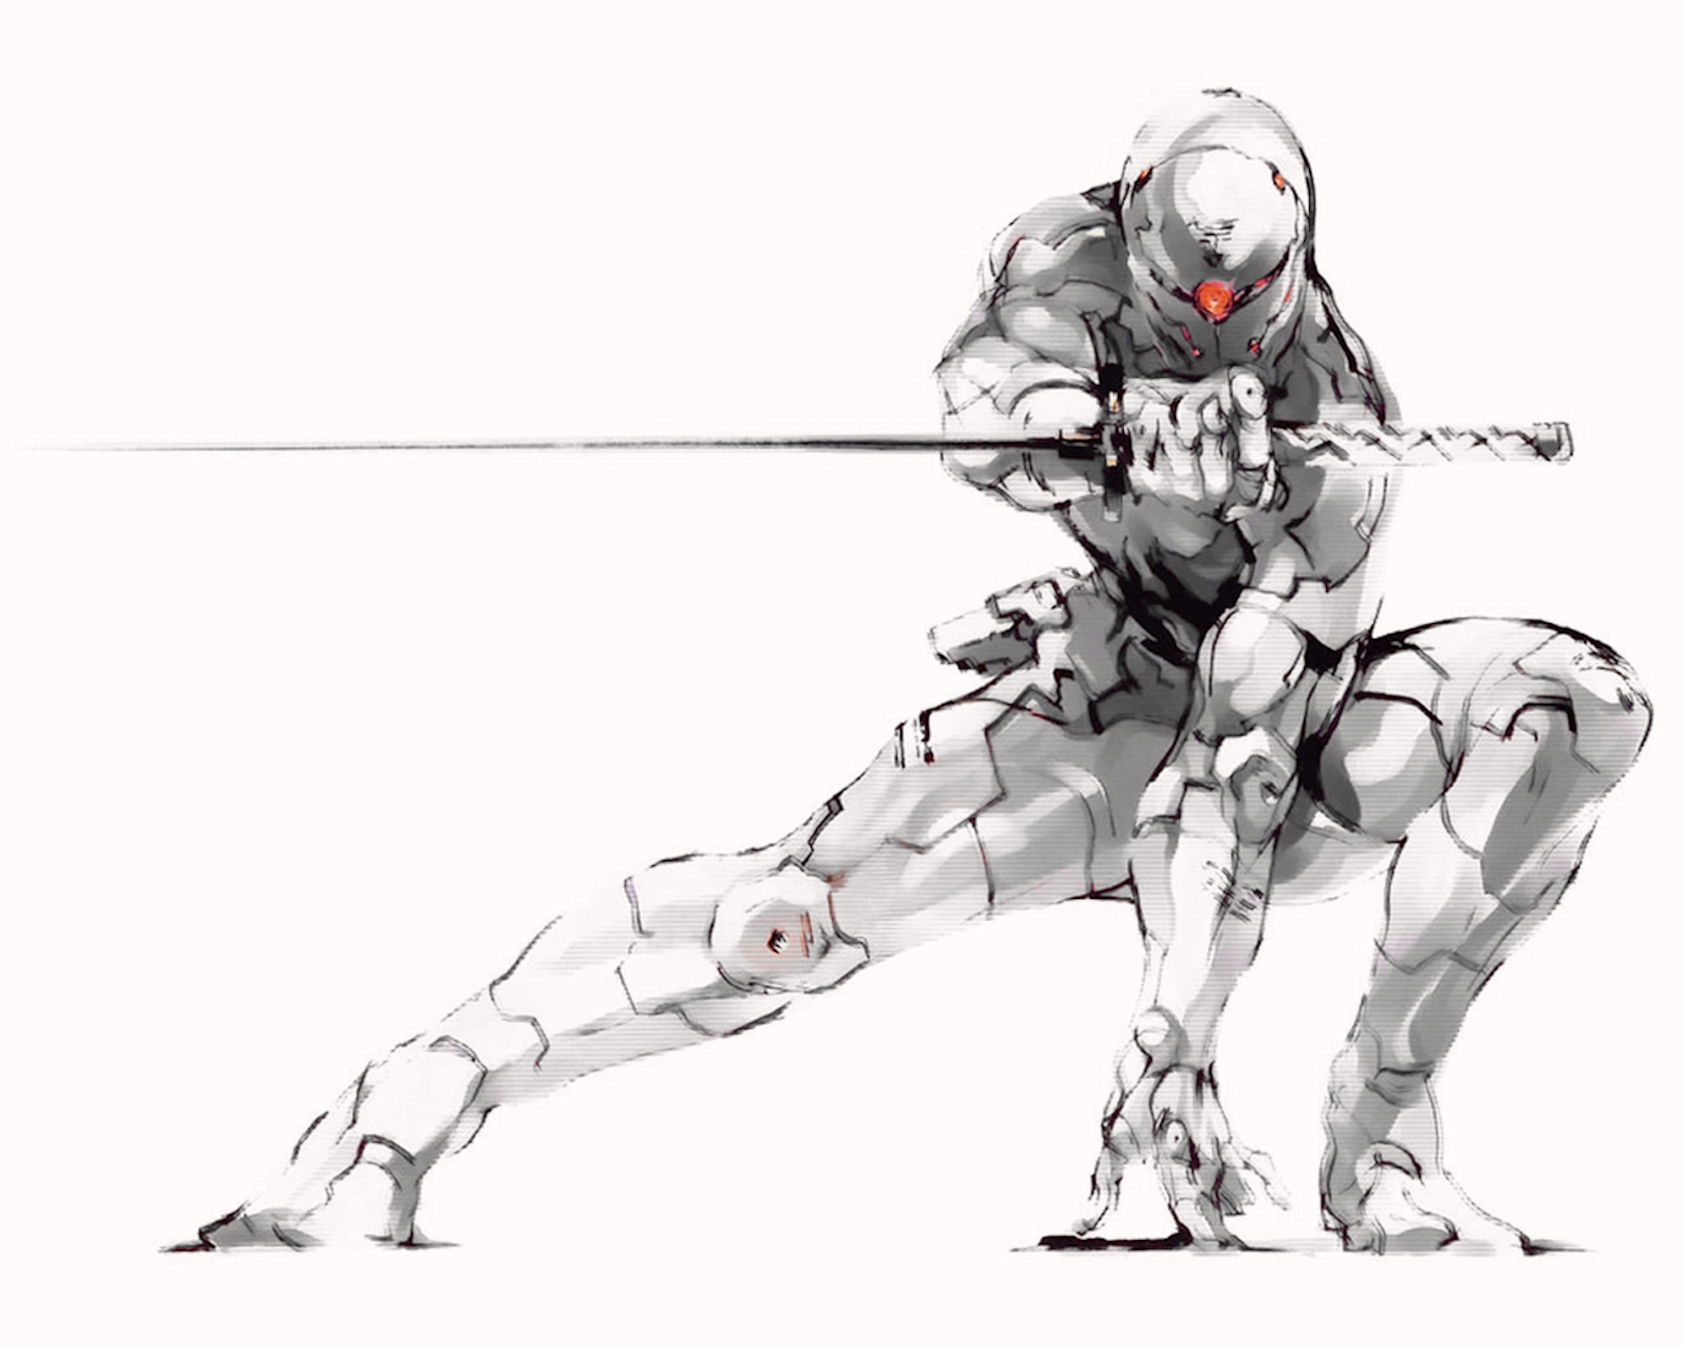 1683x1347 Metal Gear Solid Gray Fox 1683x1347 Wallpaper High Quality